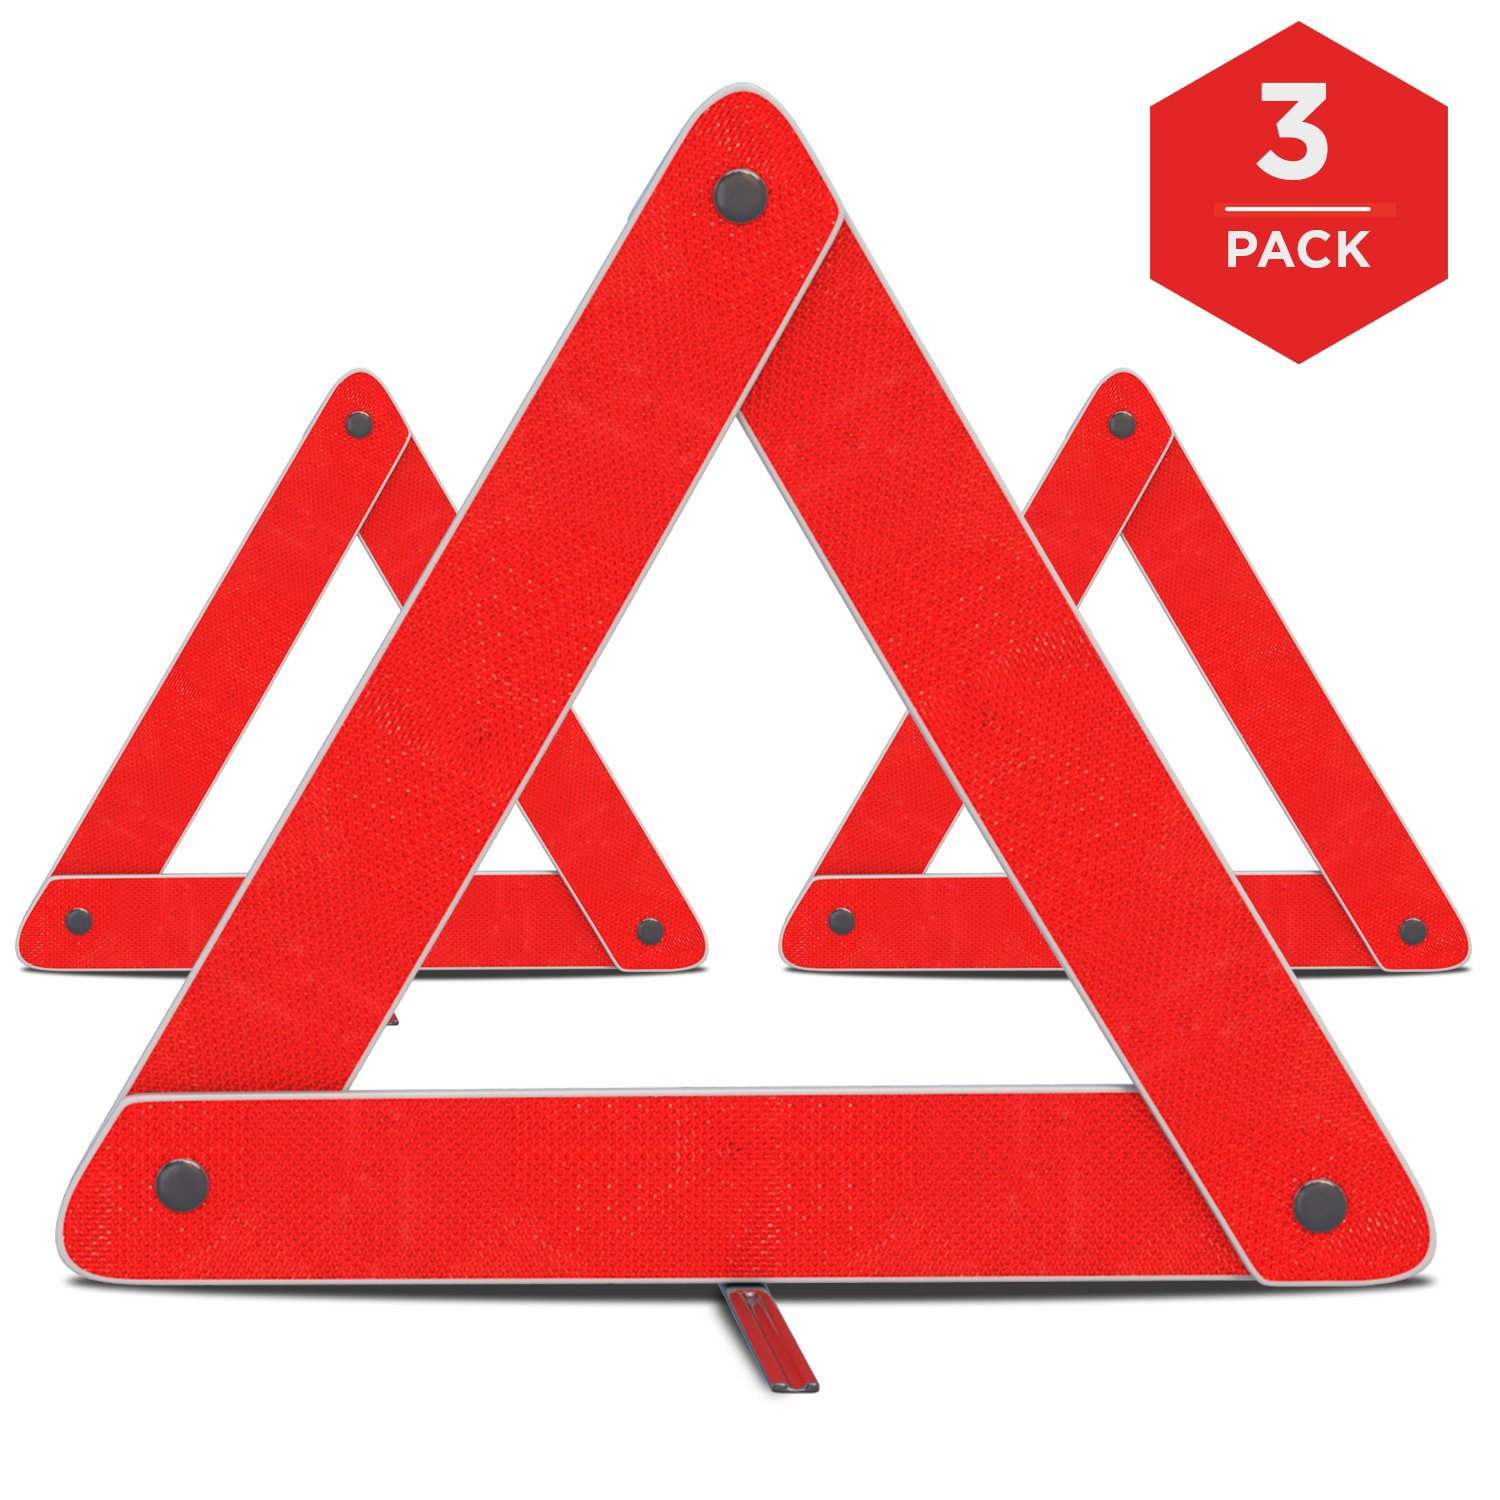 Emergency Warning Triangle by mAuto™, Foldable Reflective Safety Warning Sign, Roadside Hazard Triangle Symbol Warning Sign w/Secure Base, Early Warning Road Safety Triangle 3 Pack